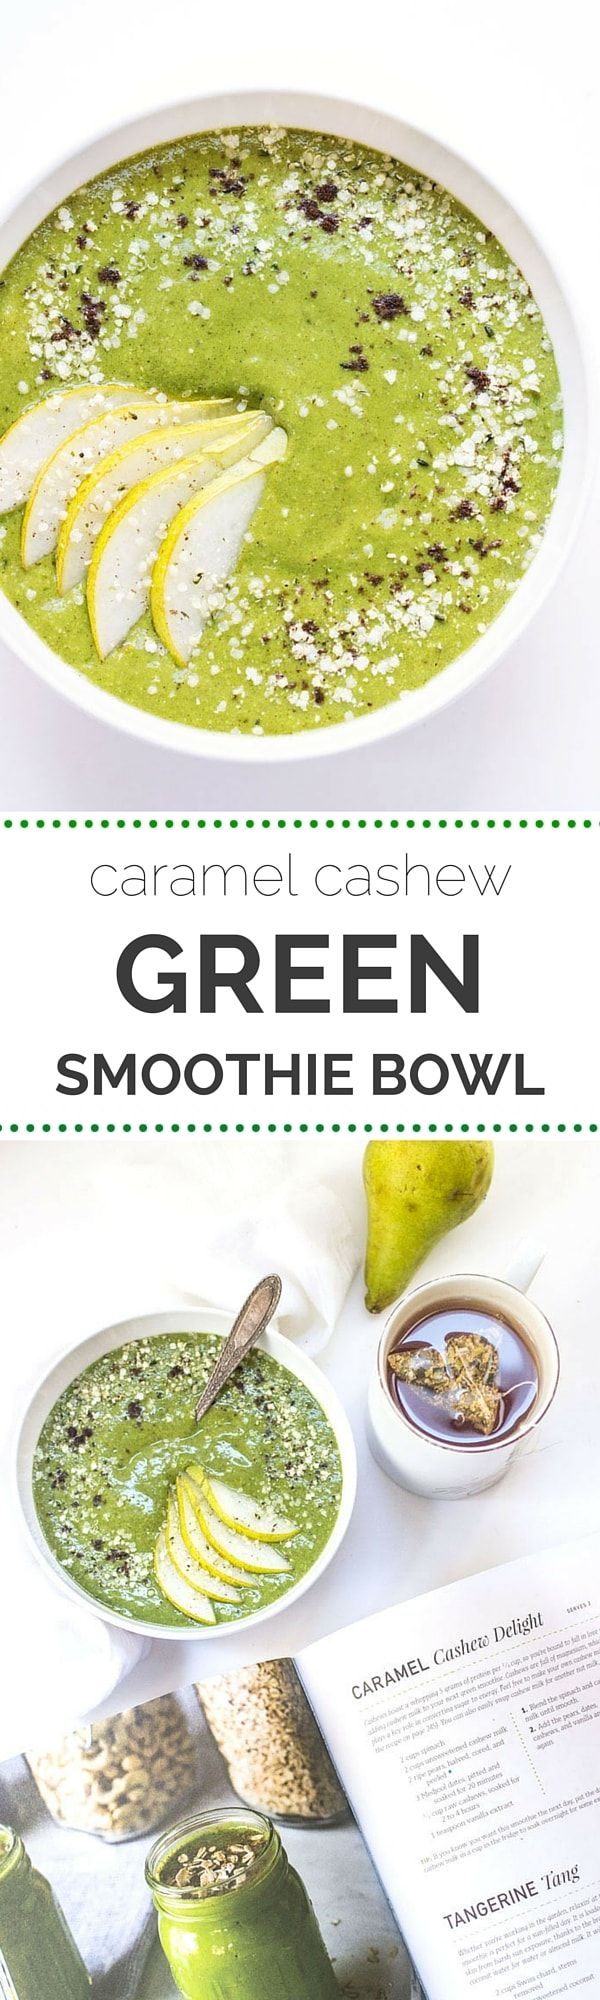 I wish my breakfast always tasted like ice cream! This Caramel Cashew Green Smoothie Bowl was probably the most delicious healthy breakfast I have ever eaten!